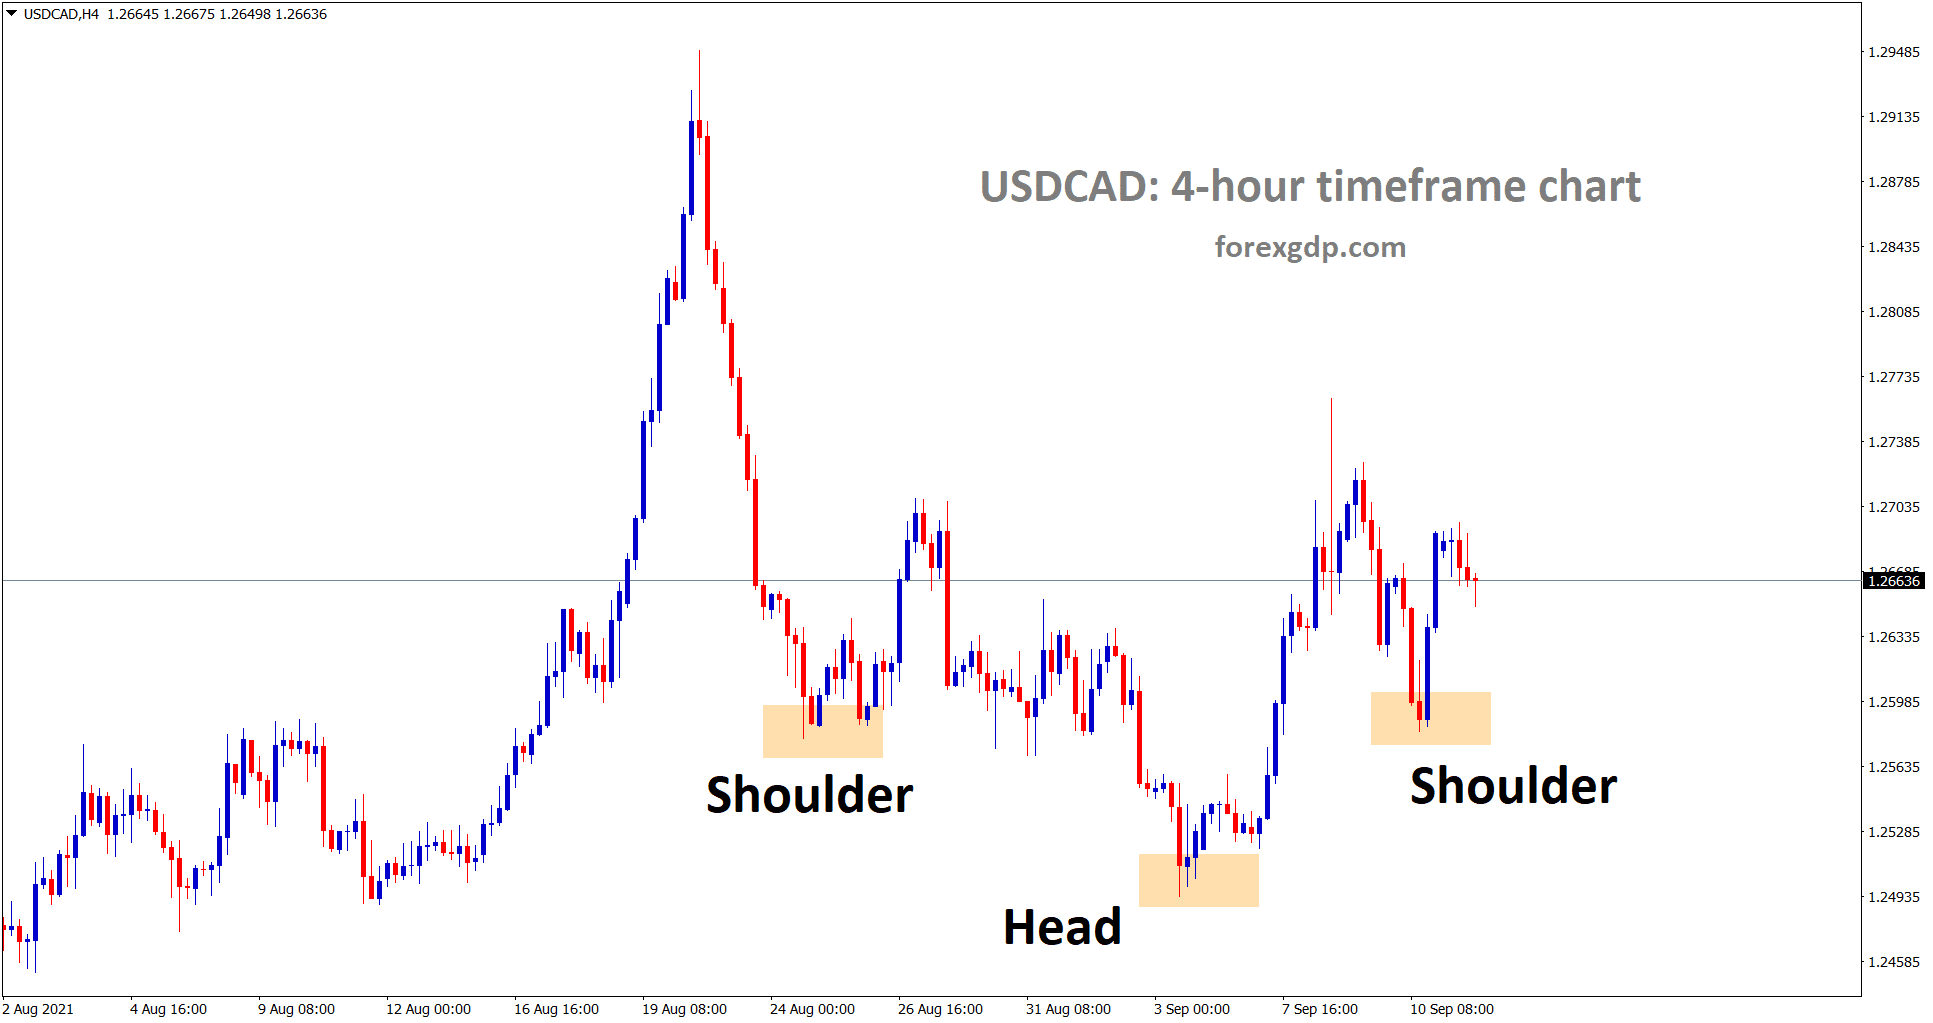 In another view USDCAD is trying to create a Inverse Head and Shoulder pattern